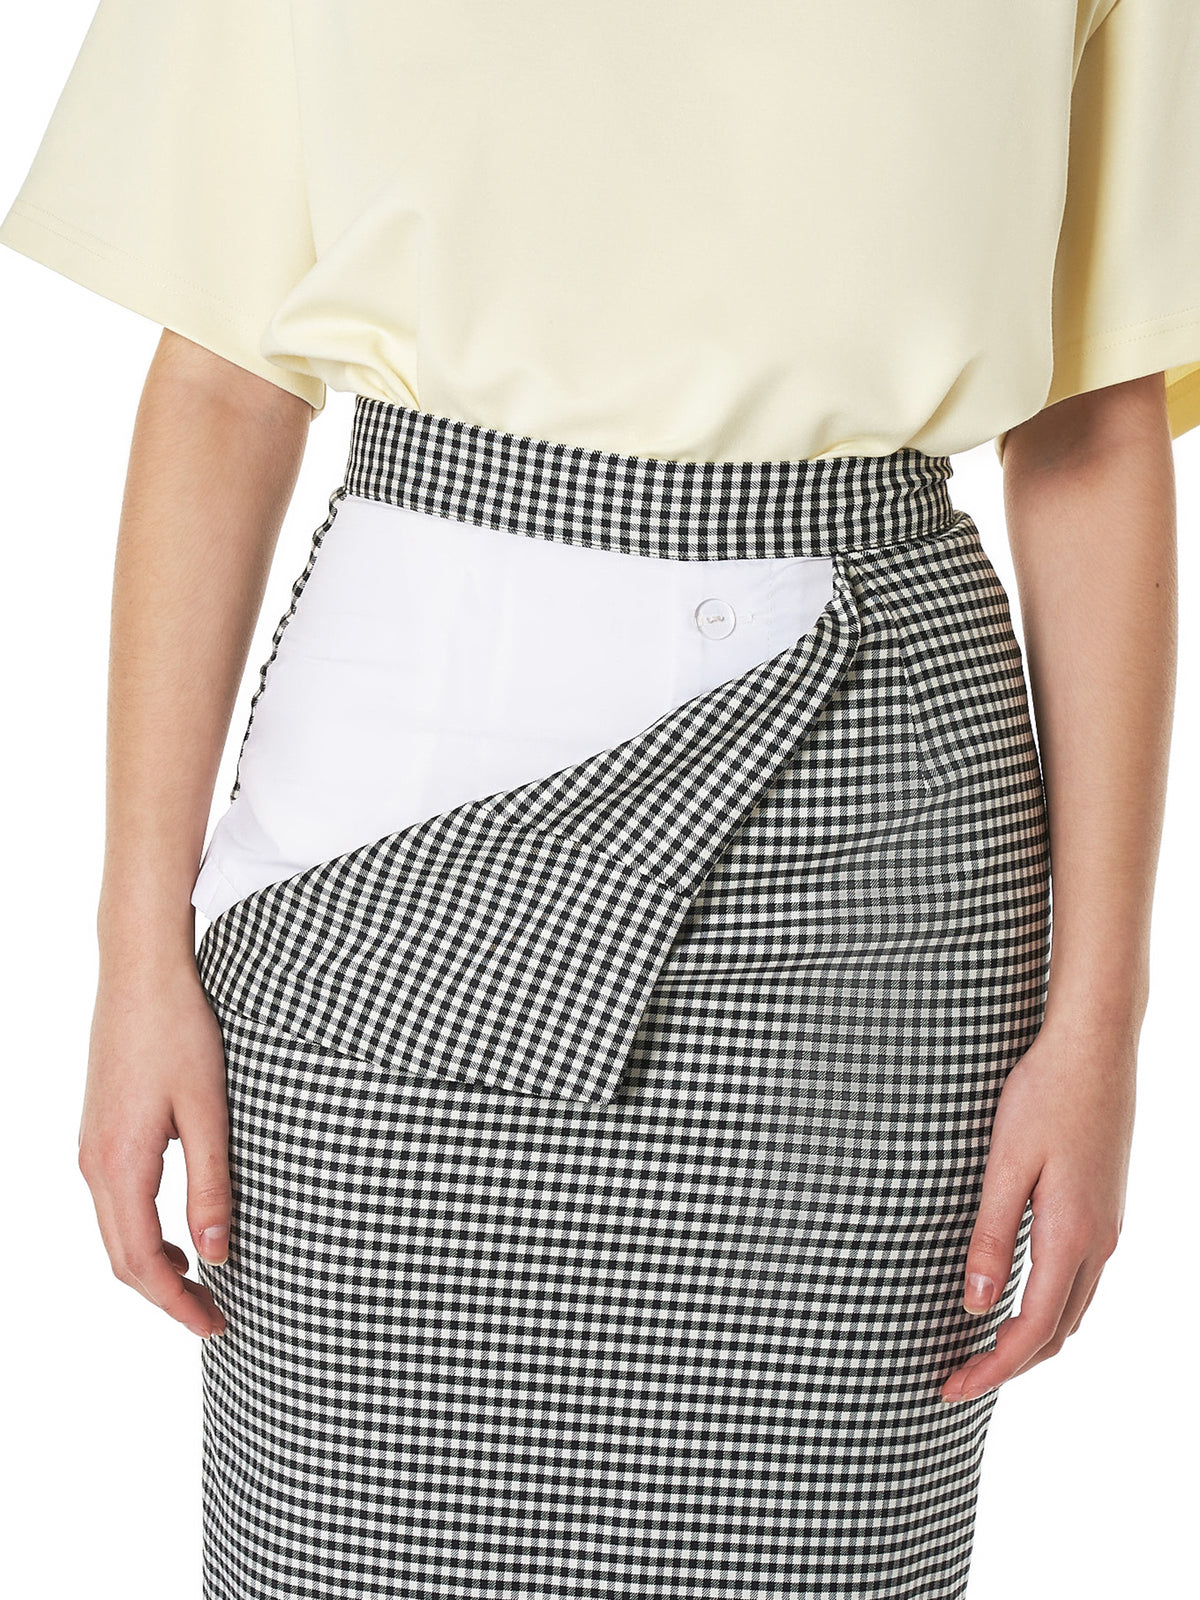 Gingham Peel-Away Skirt (12A-BLACK-WHITE)